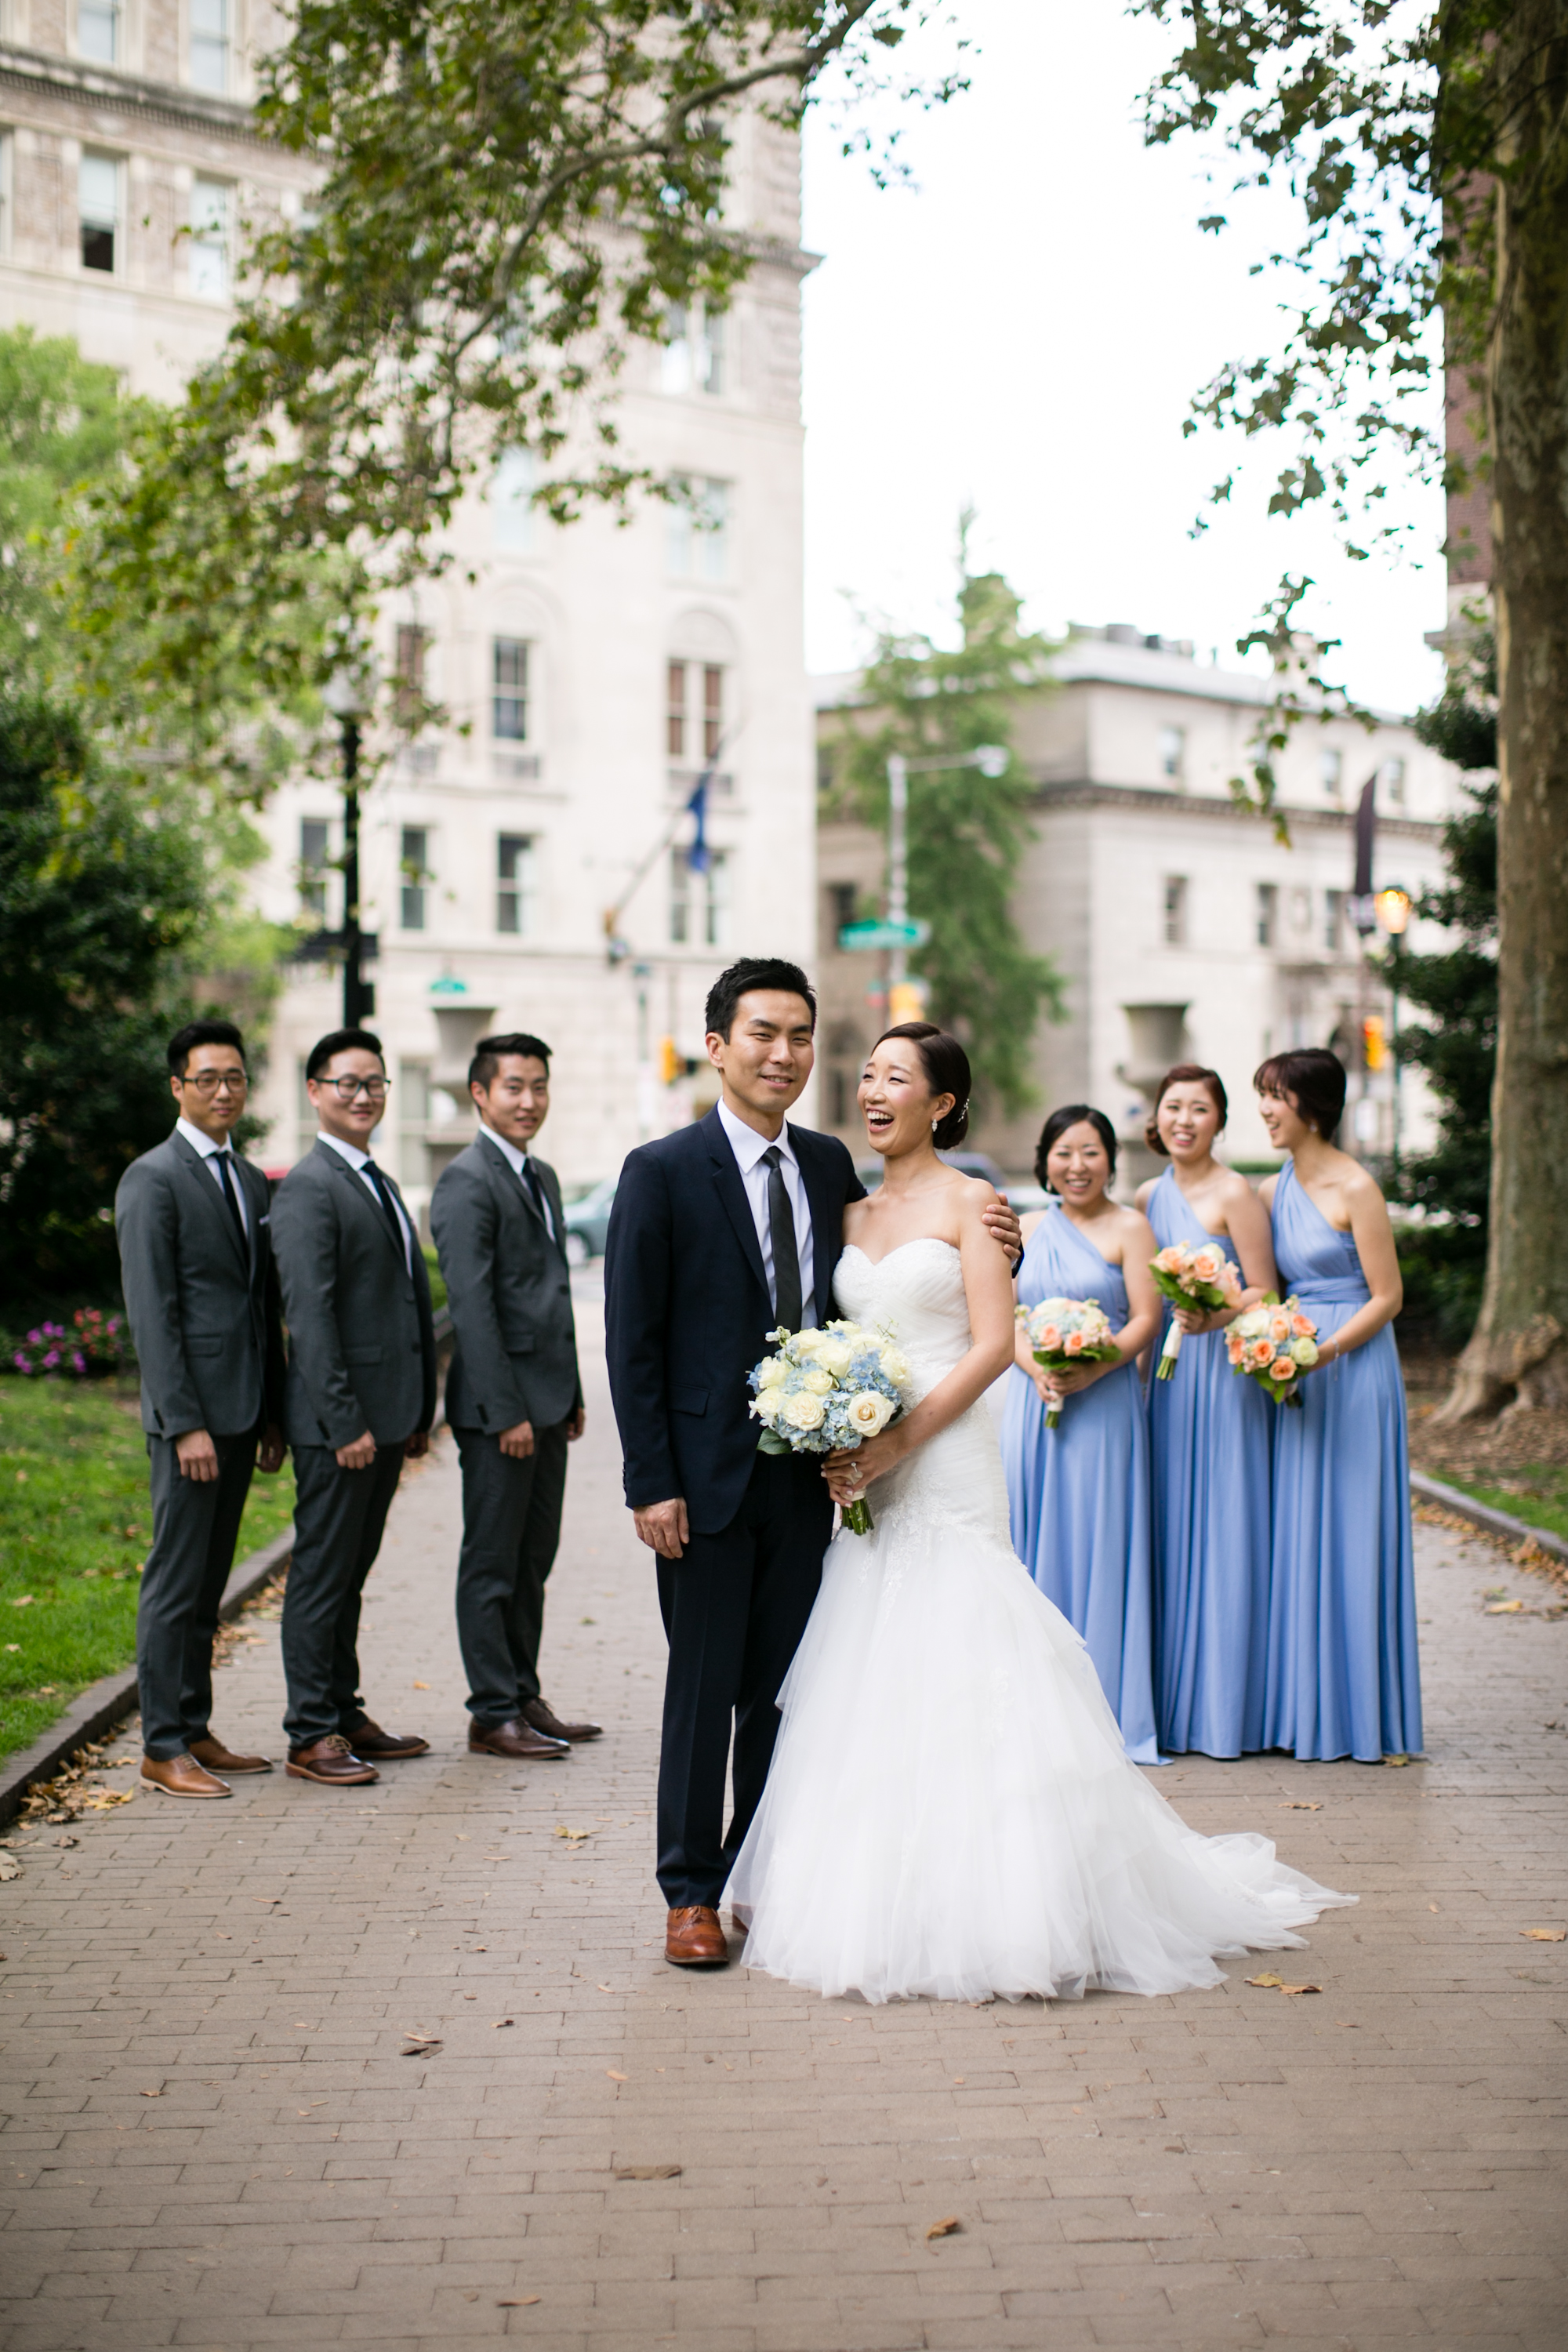 Racquet Club wedding by Peach Plum Pear Photo_005.jpg